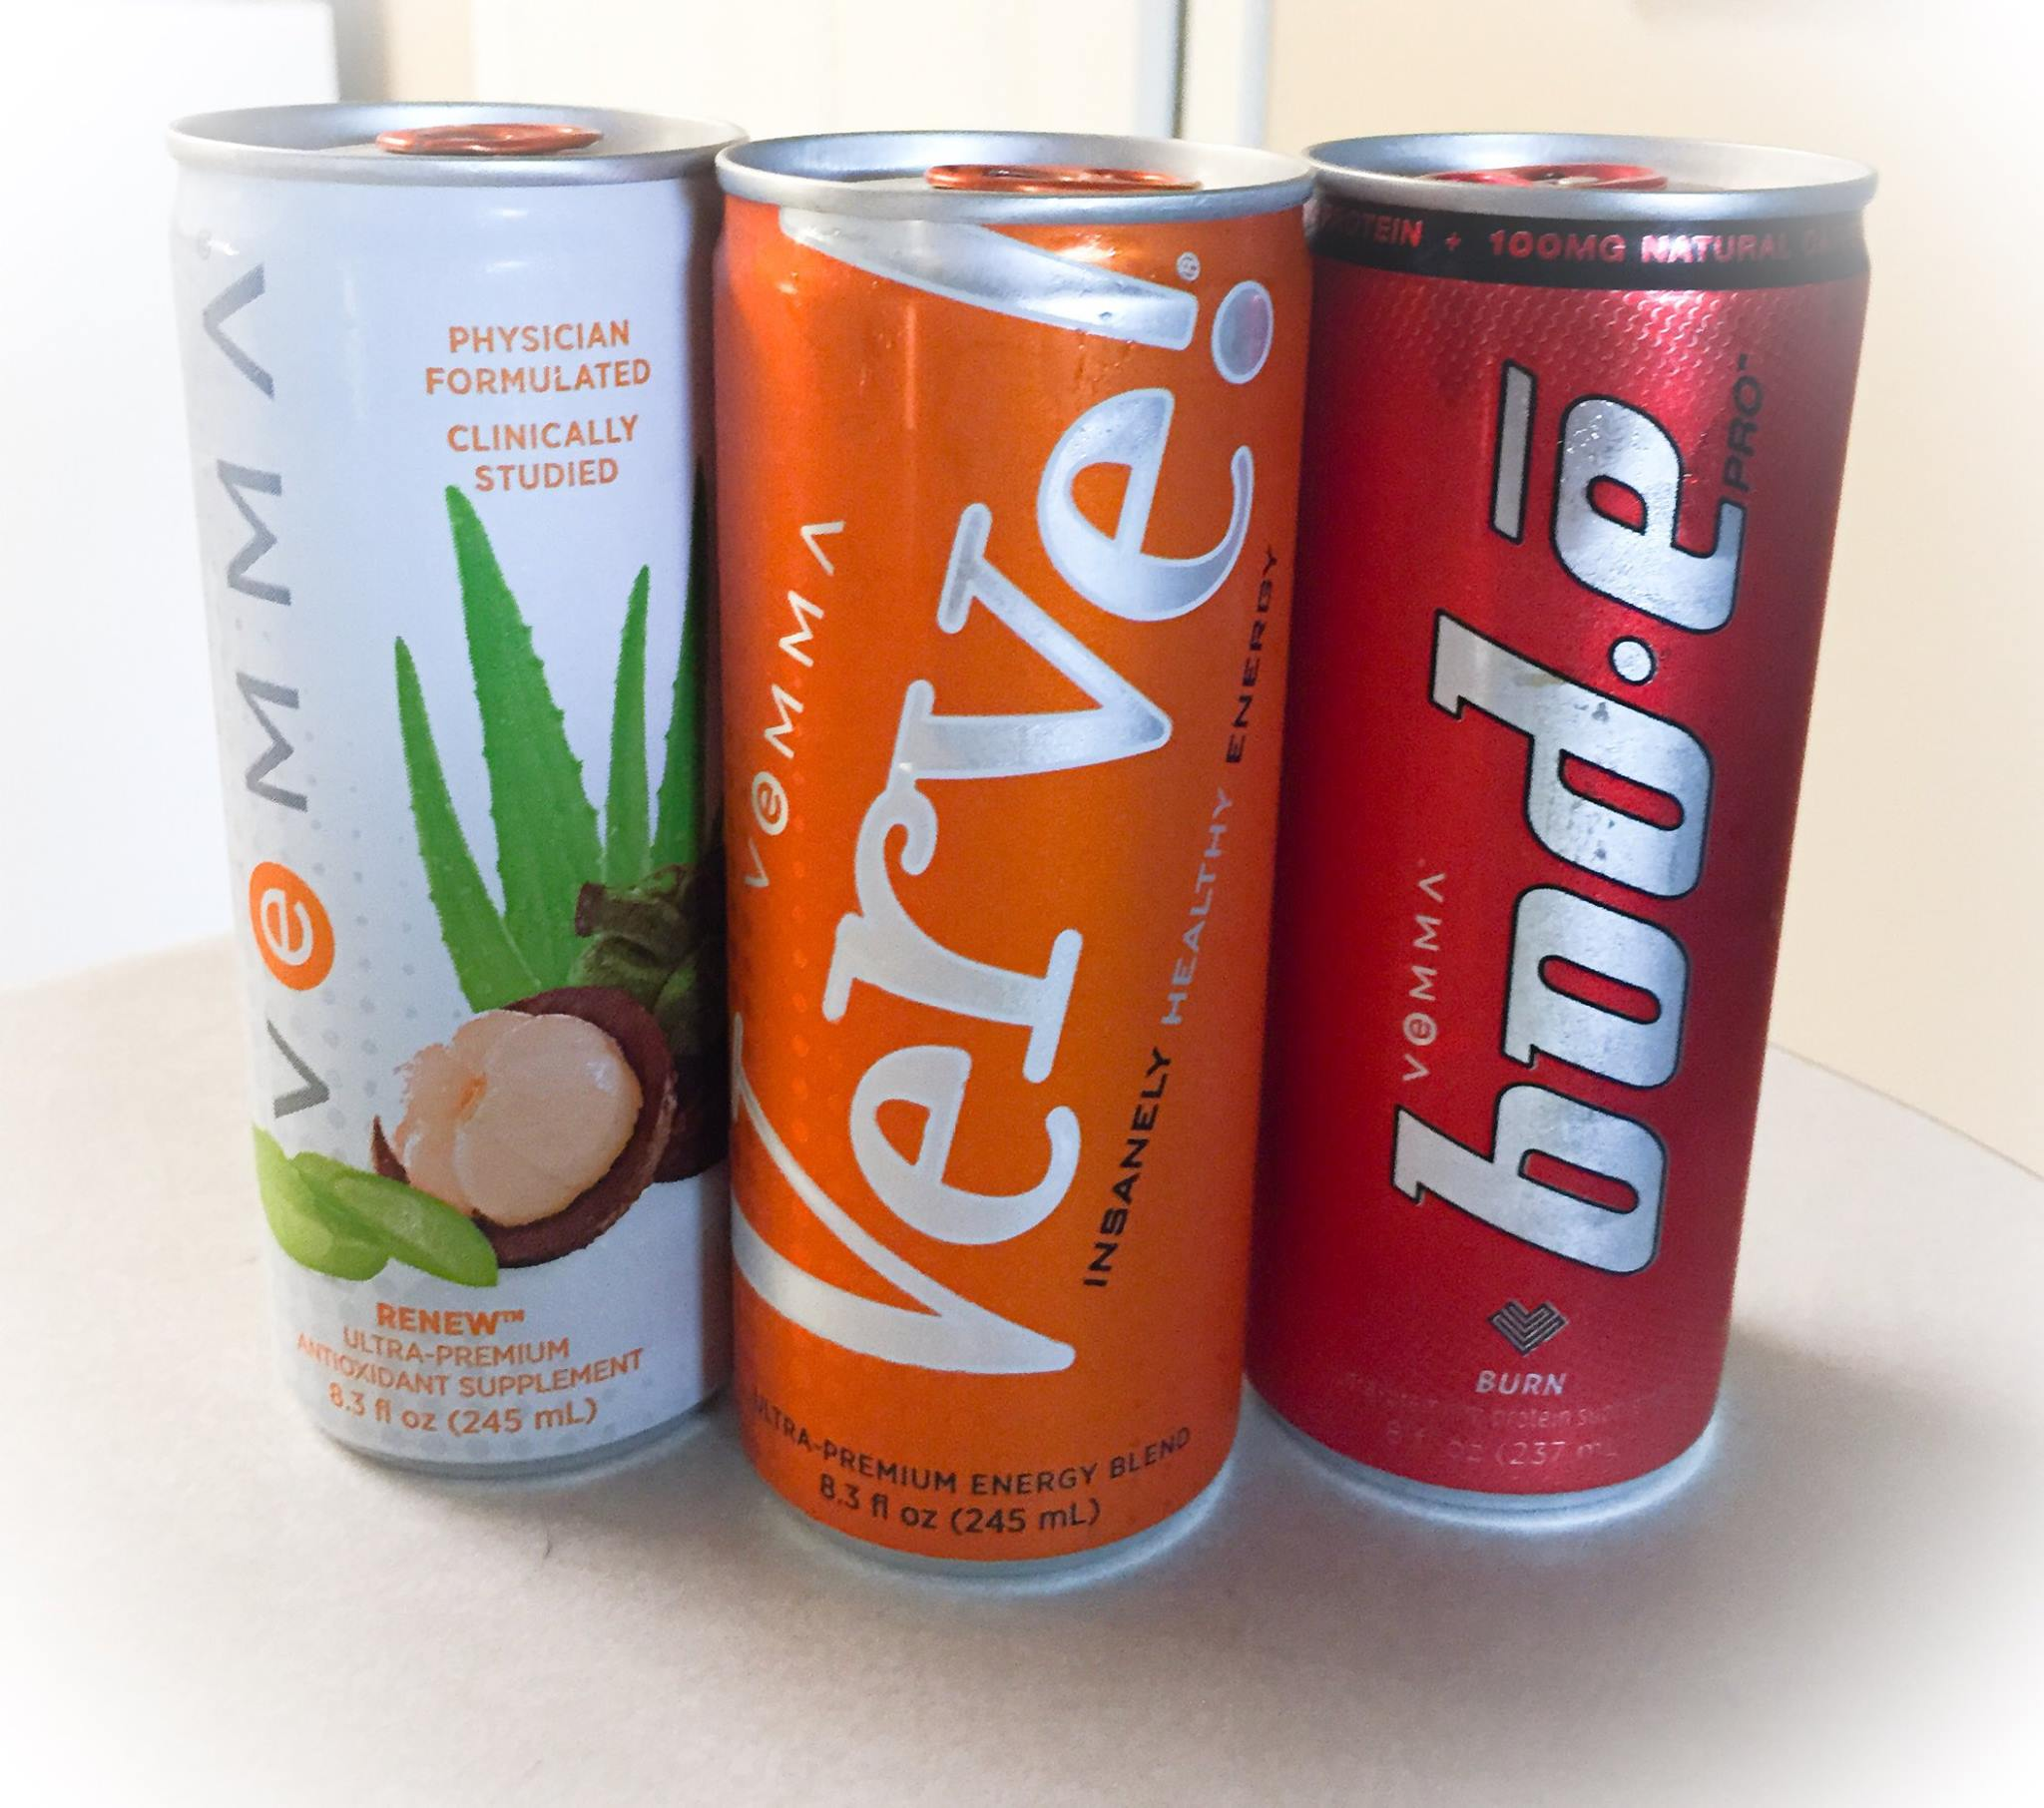 Energy drink company targets college students in pyramid scheme |